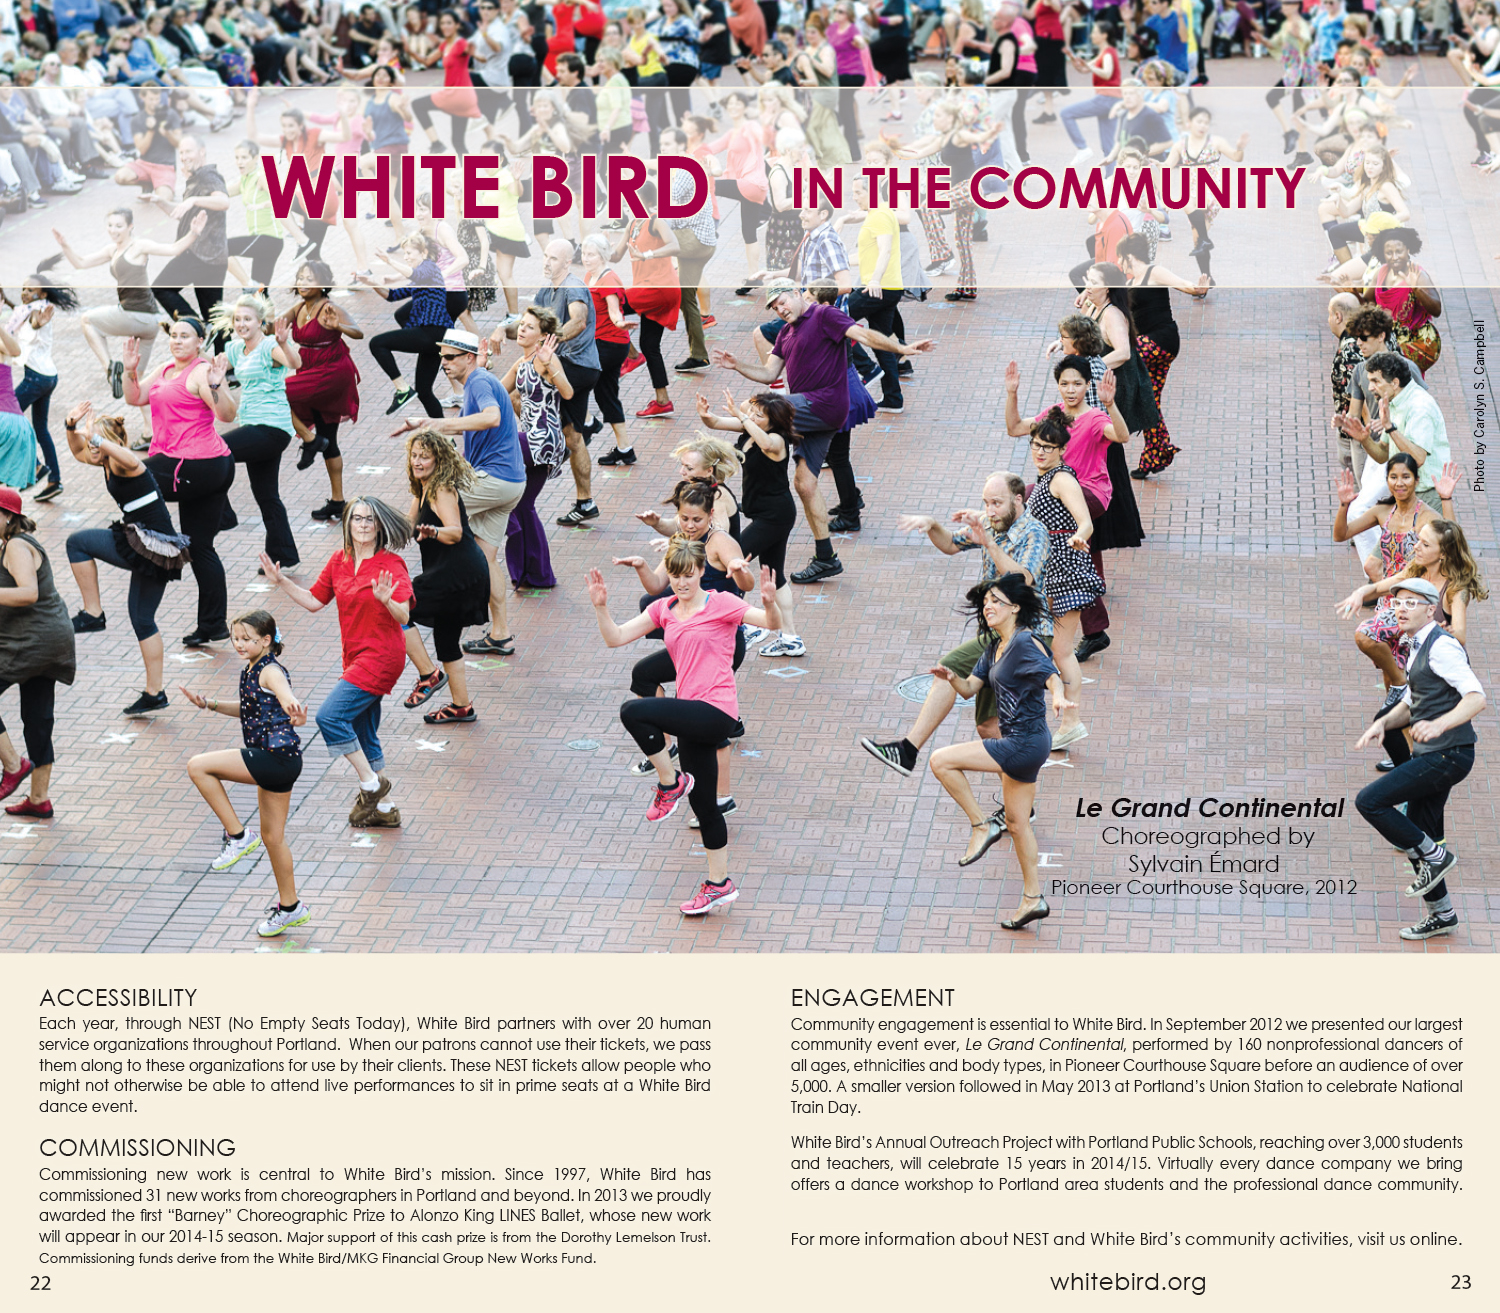 Sarah Toor Brochure Design, White Bird